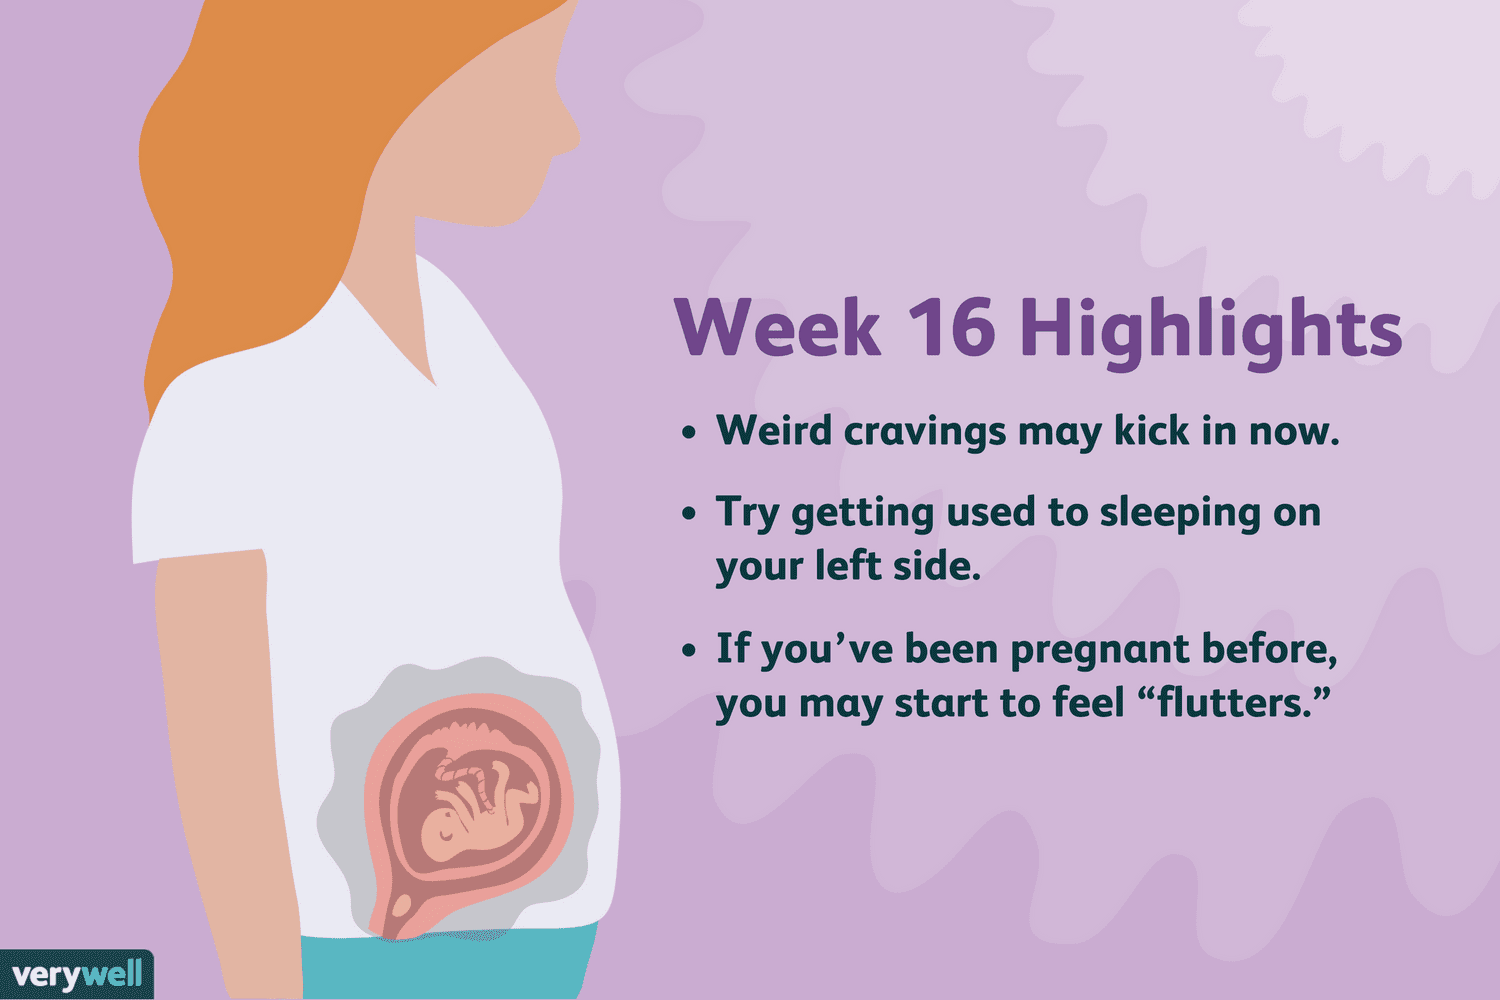 16 Weeks Pregnant: Symptoms, Baby Development, and More